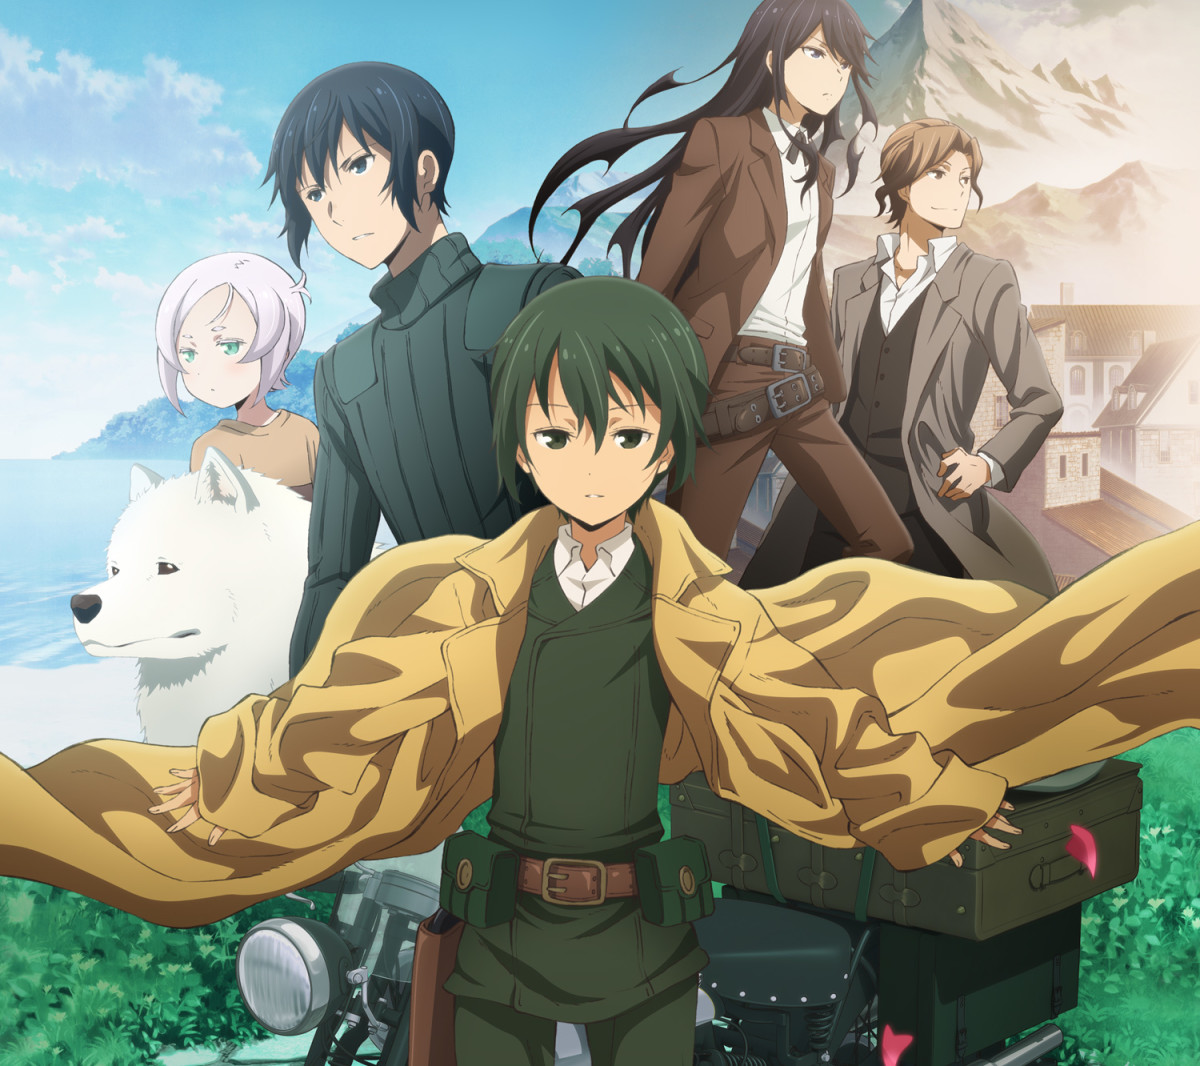 10 Anime That Will Remind You of Kino No Tabi: The Beautiful World (Kino's Journey)